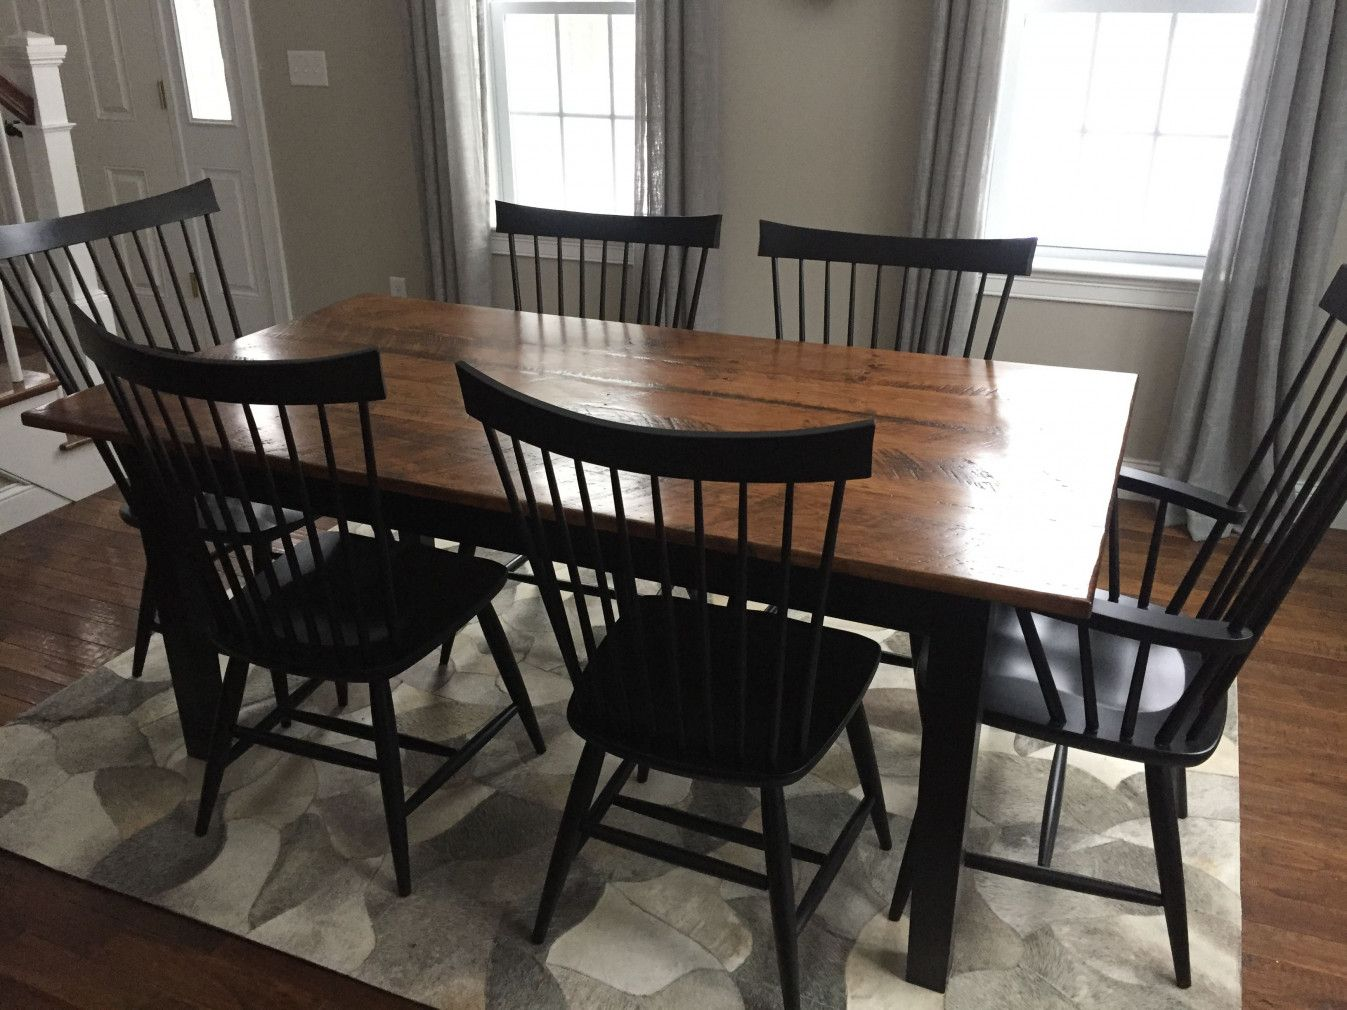 11 Best Shaker Dining Room Ideas, Shaker Dining Room Table And Chairs